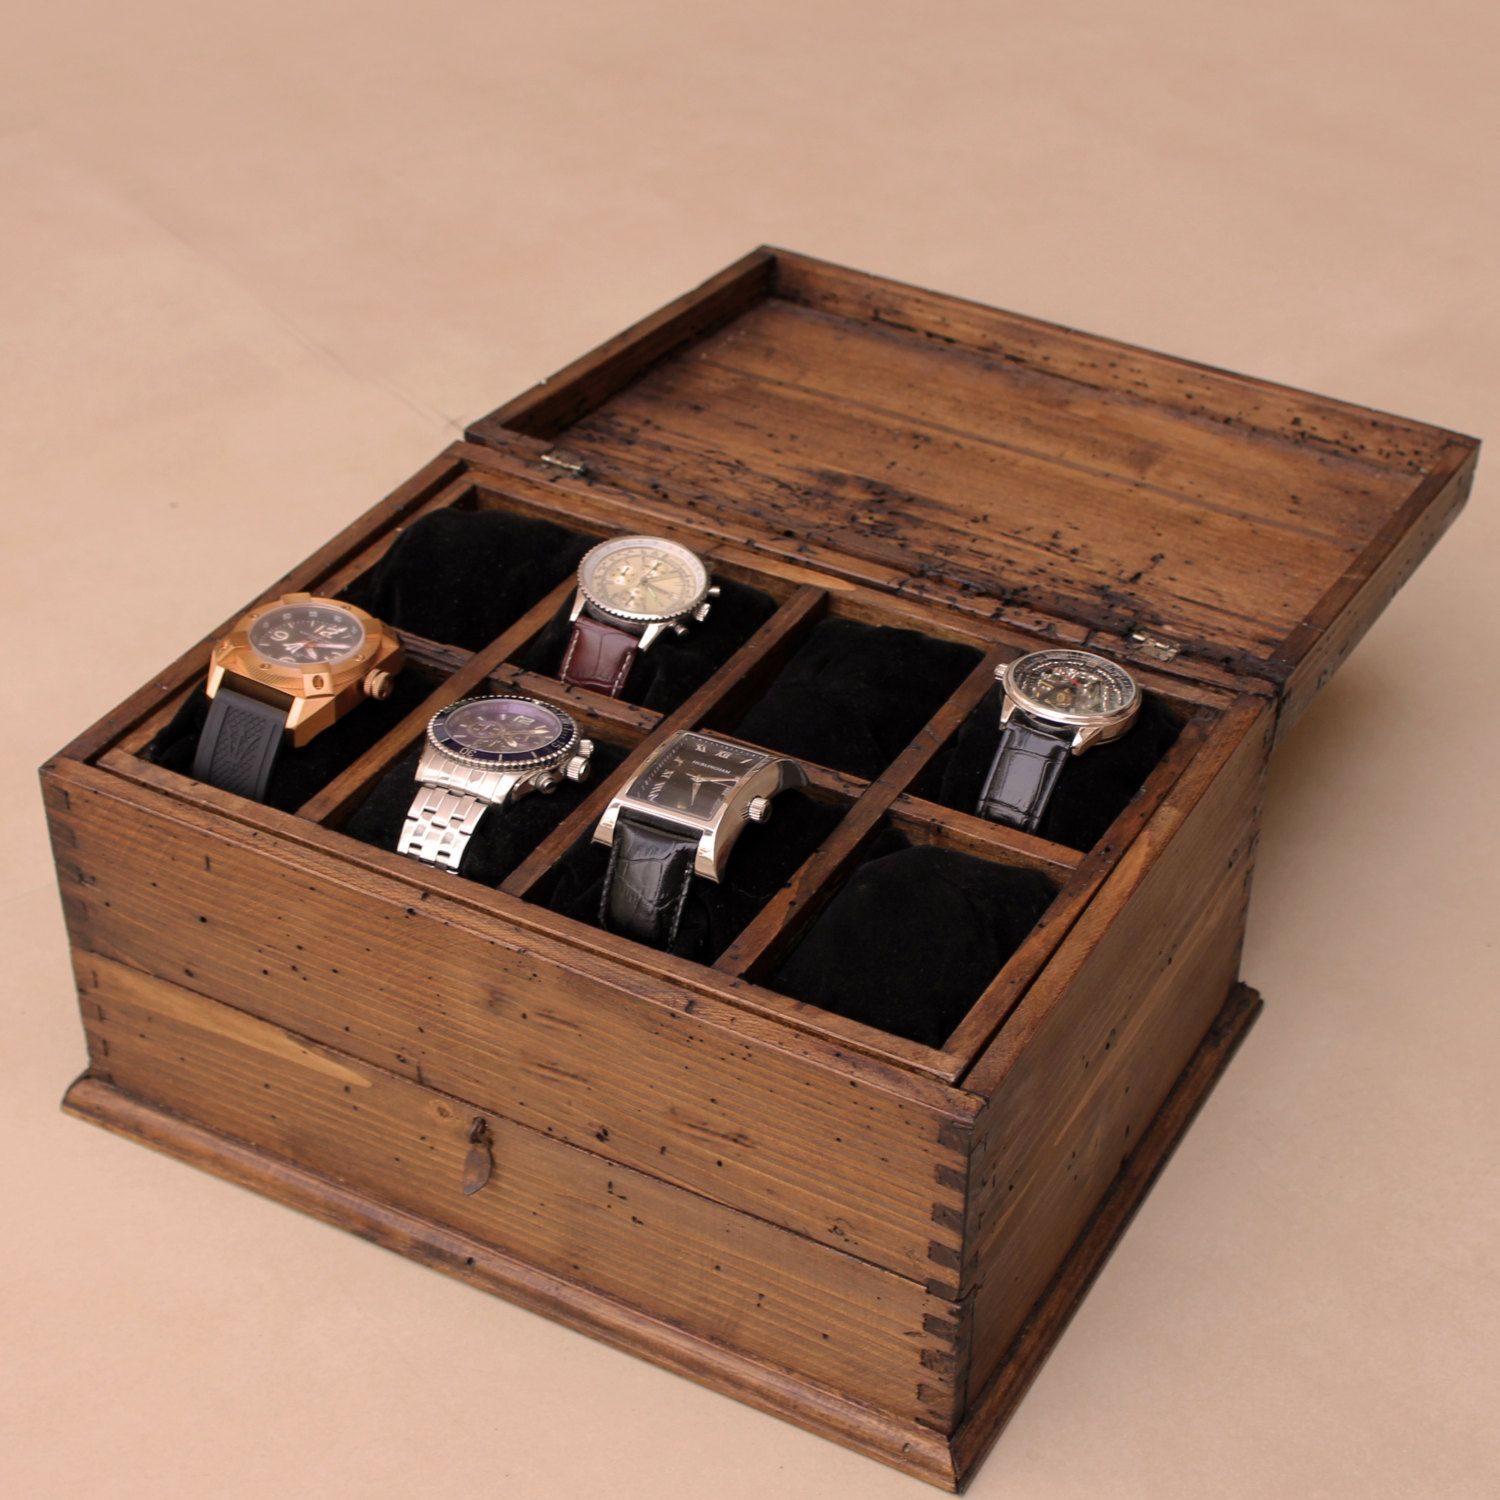 watch box for men watch box watch case men s watch box watch personalized rustic men s watch box for 8 by ourweddinginvites 149 00